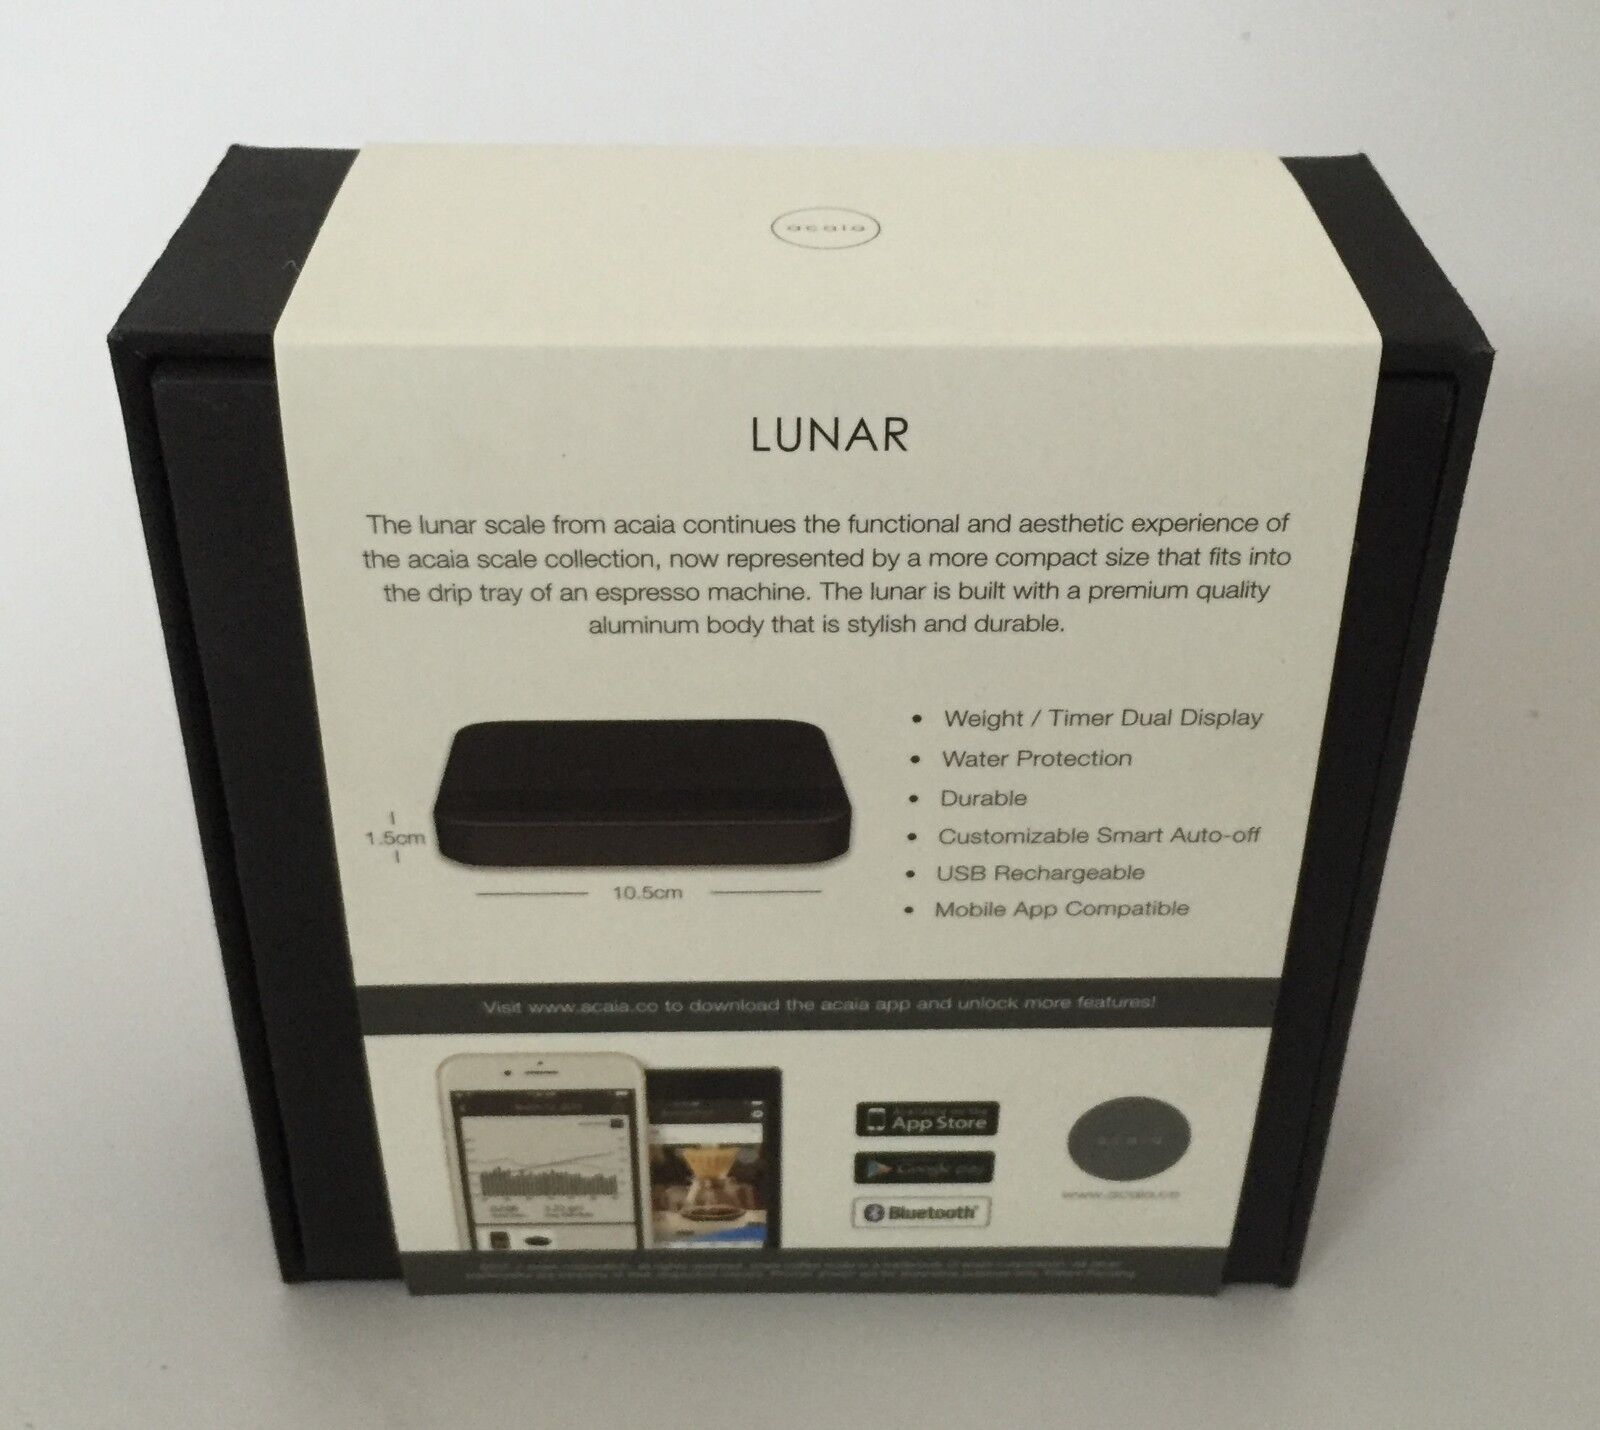 Super Bargain New Acaia Lunar Coffee Scale Gateway Bonus 2 Of 5 Amanti 3